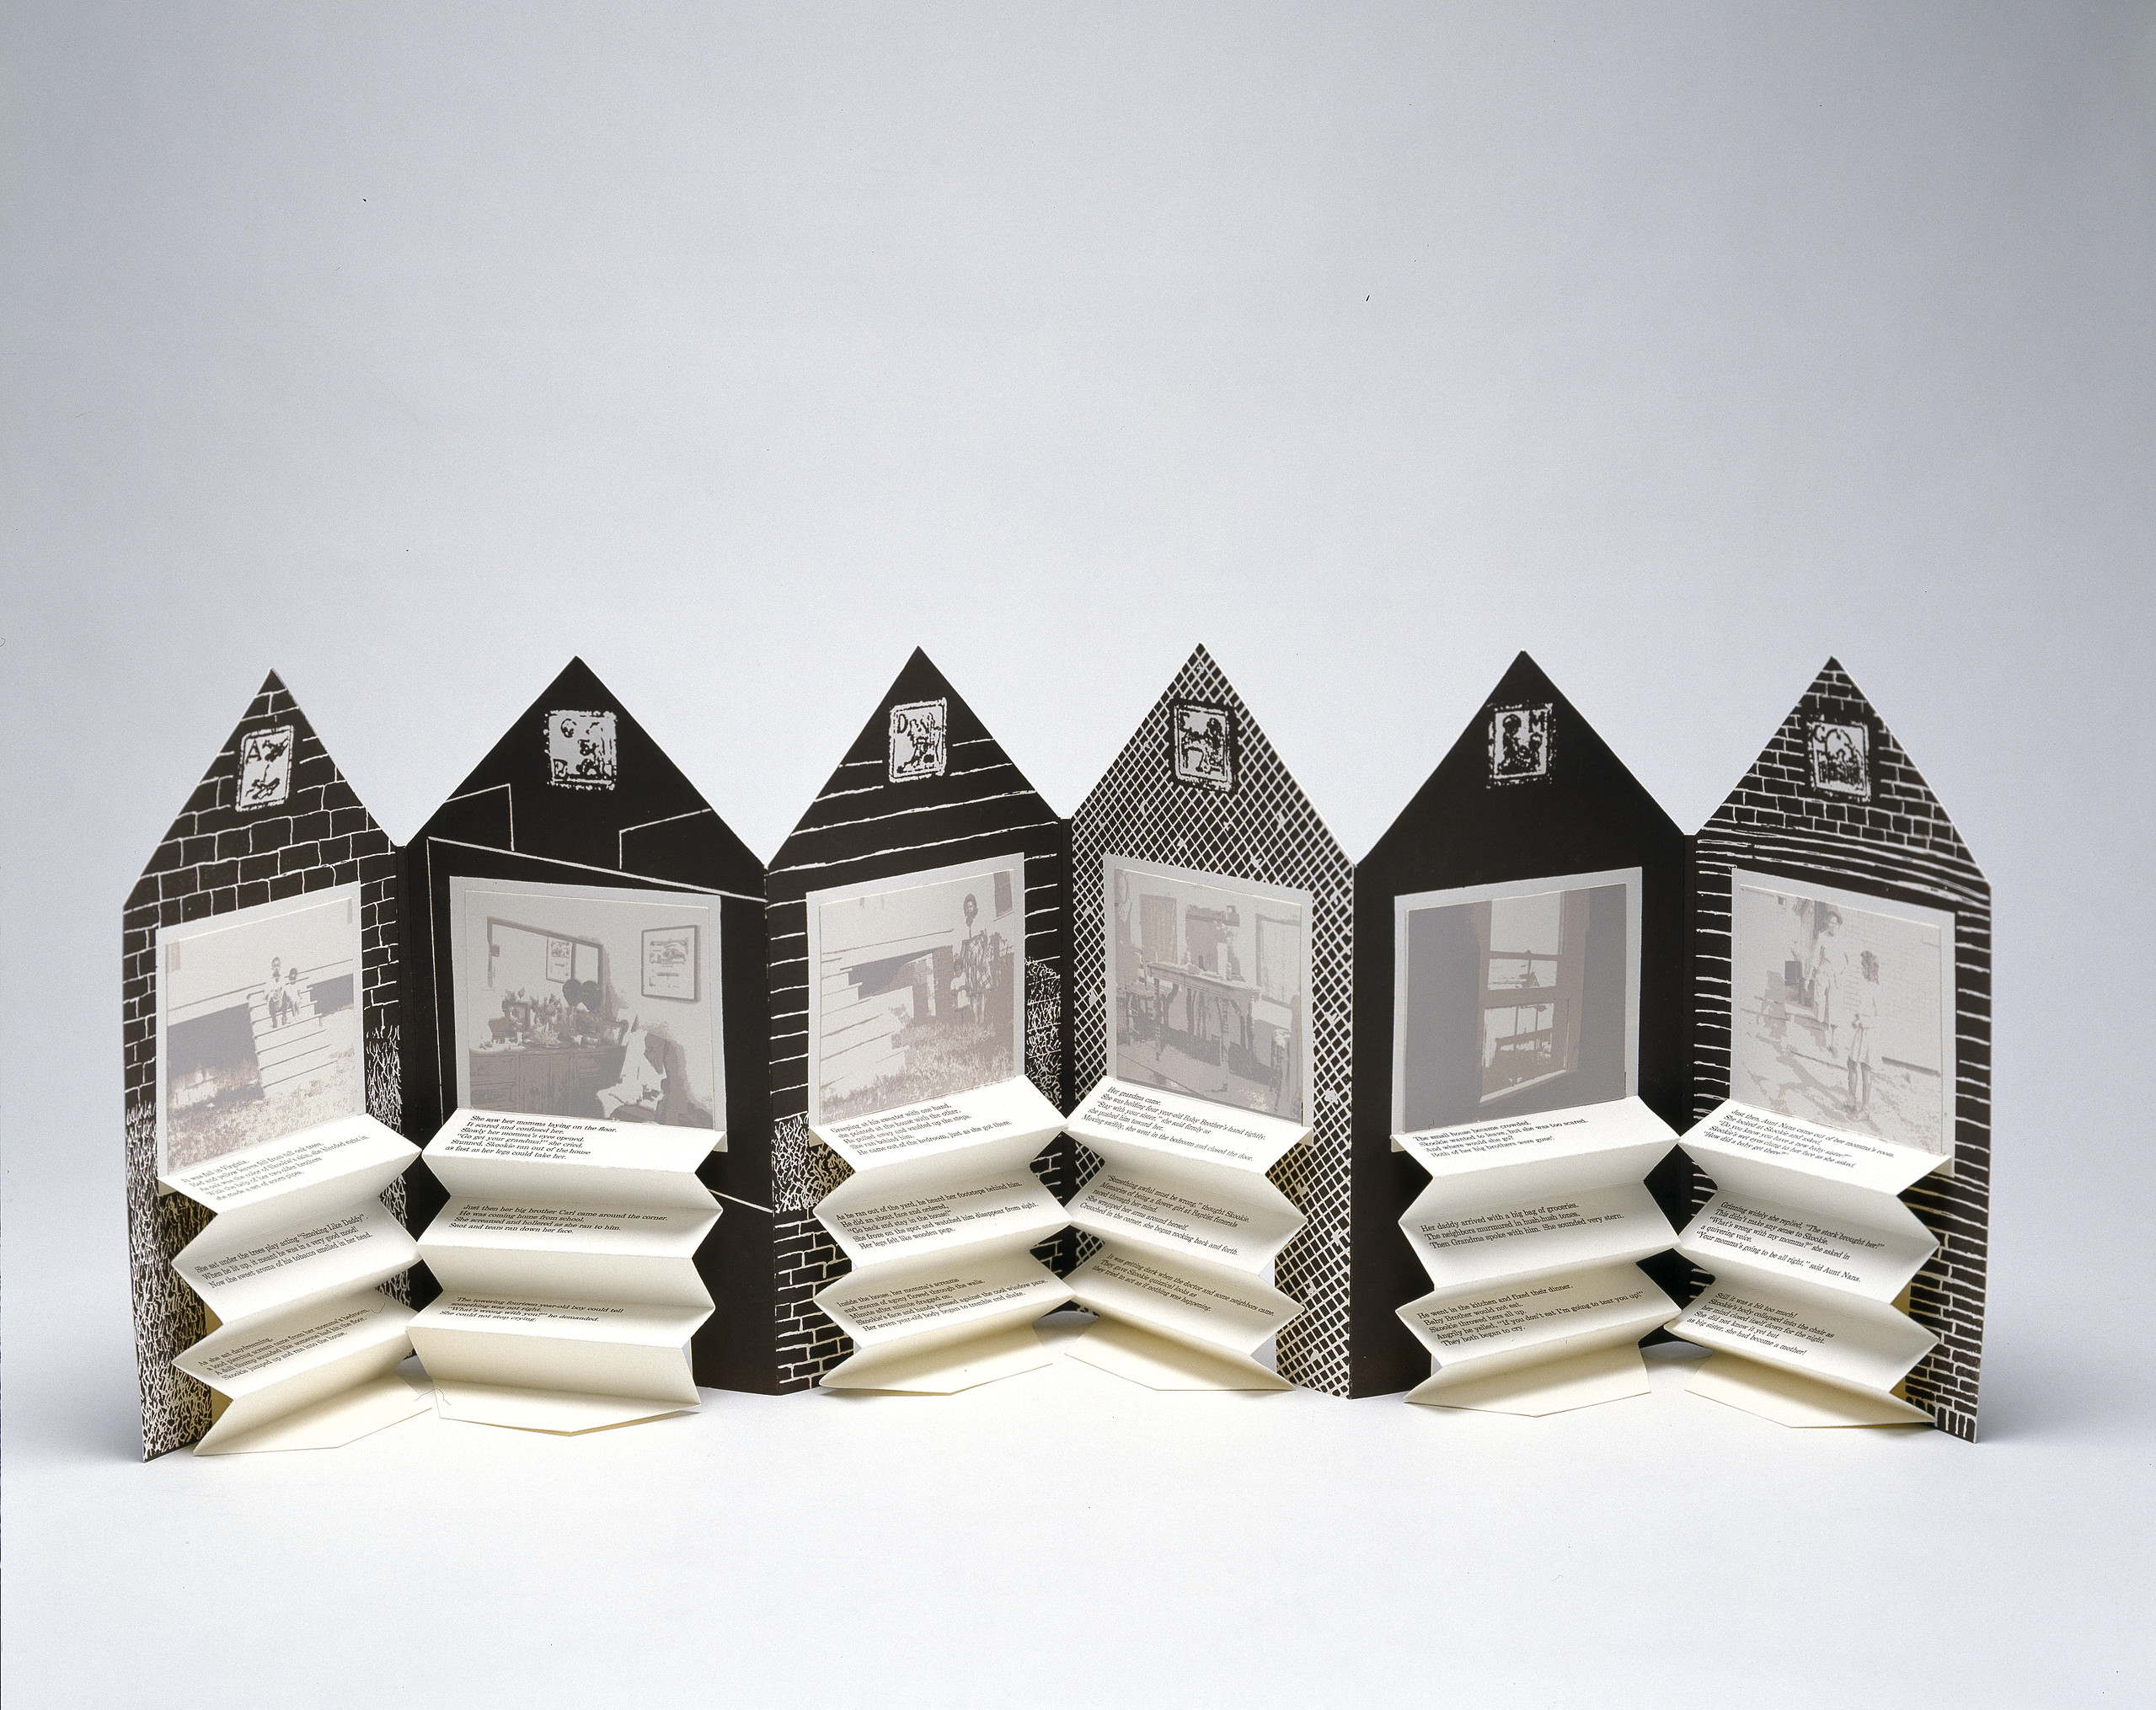 An open accordion-style book in the shape of a house. On each page is a black and white graphic background and a washed-out black and white photograph. Beneath each image is typed text on accordion folded paper.